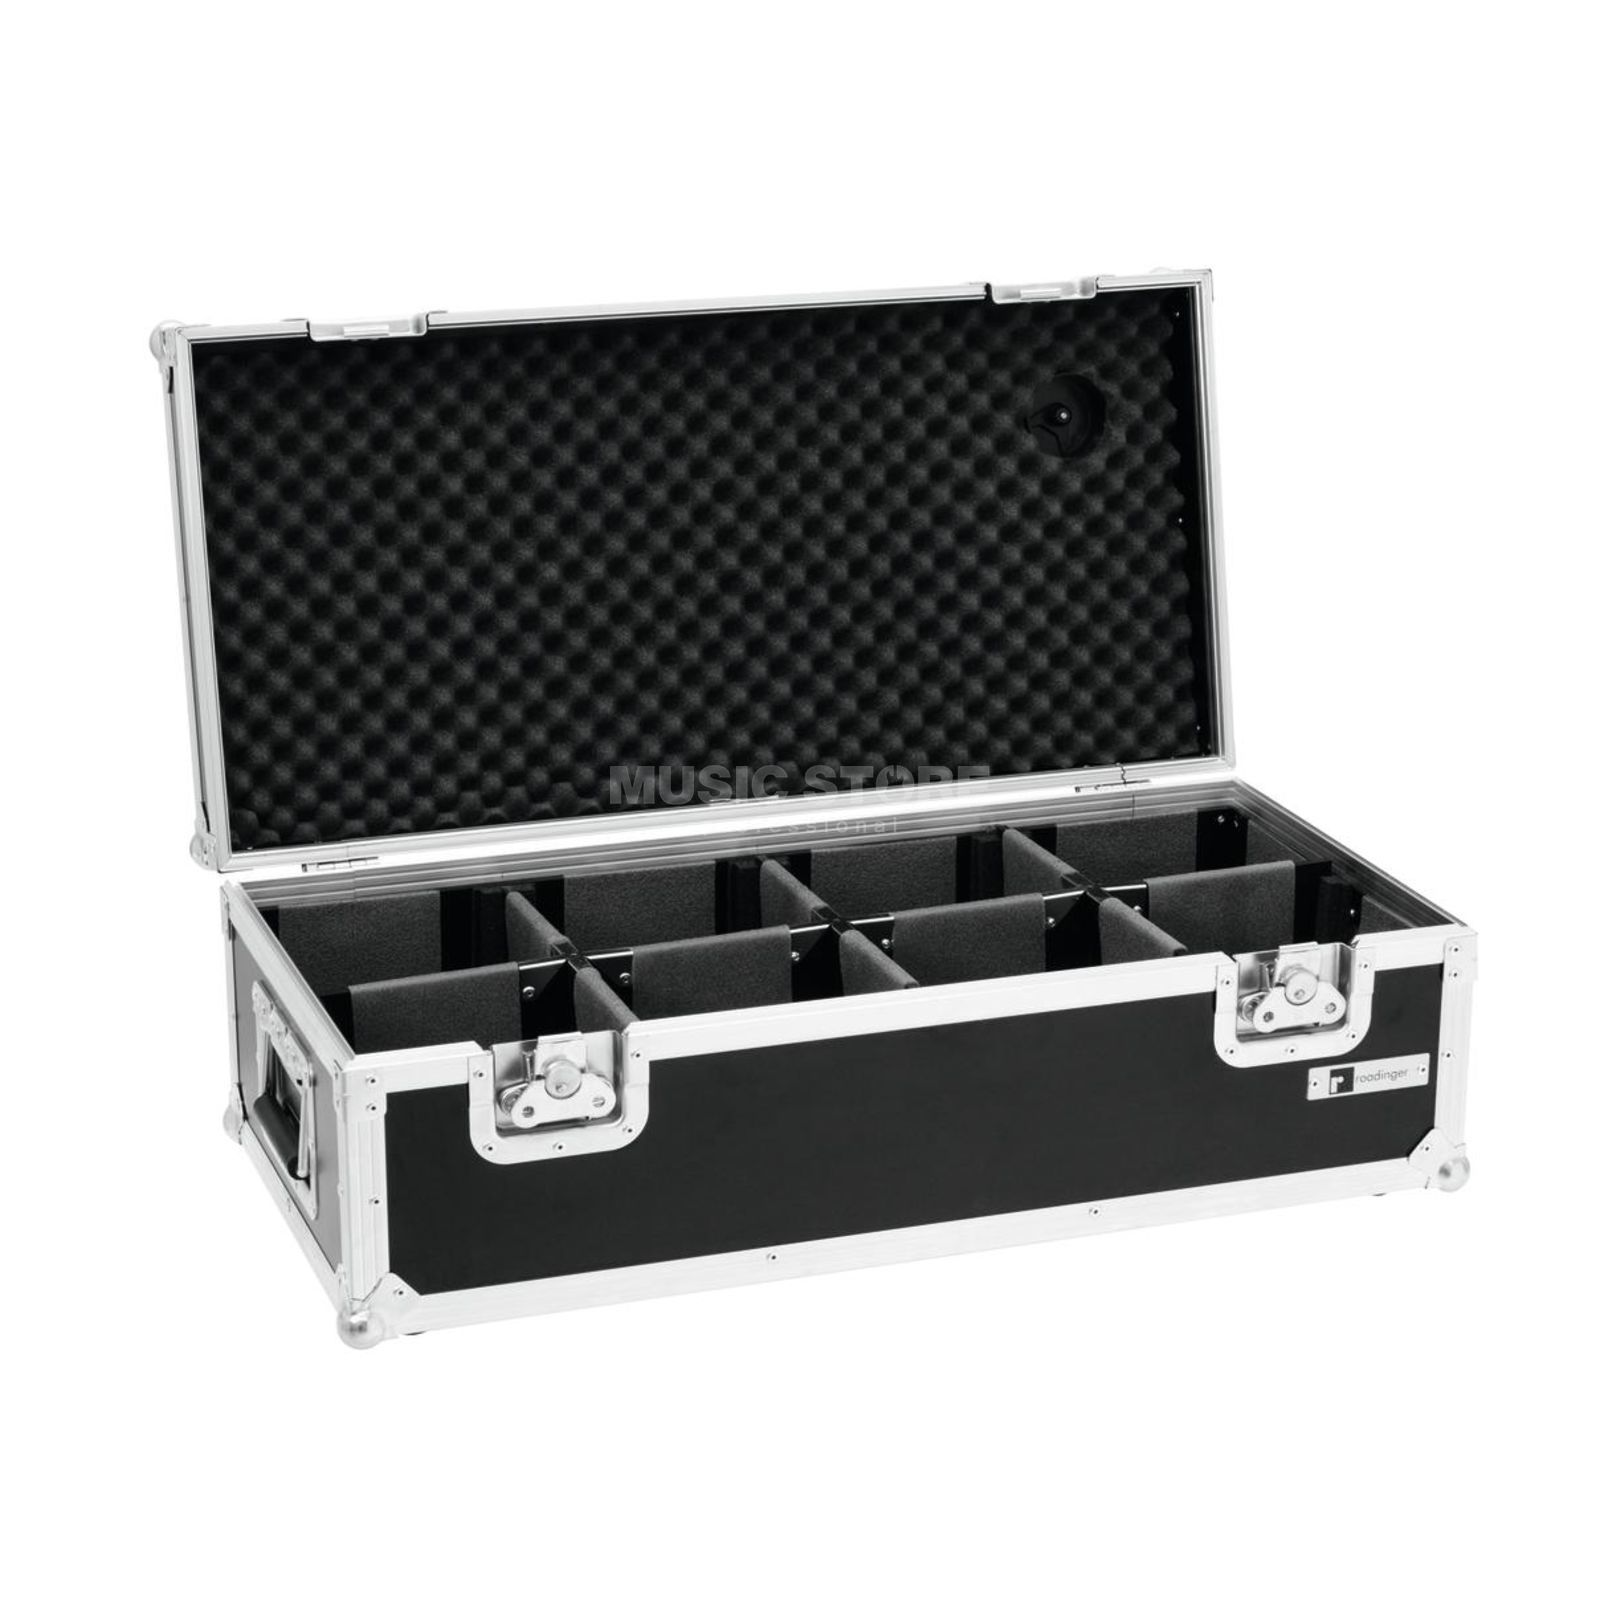 Roadinger Flightcase 8x AKKU UP-4 Productafbeelding